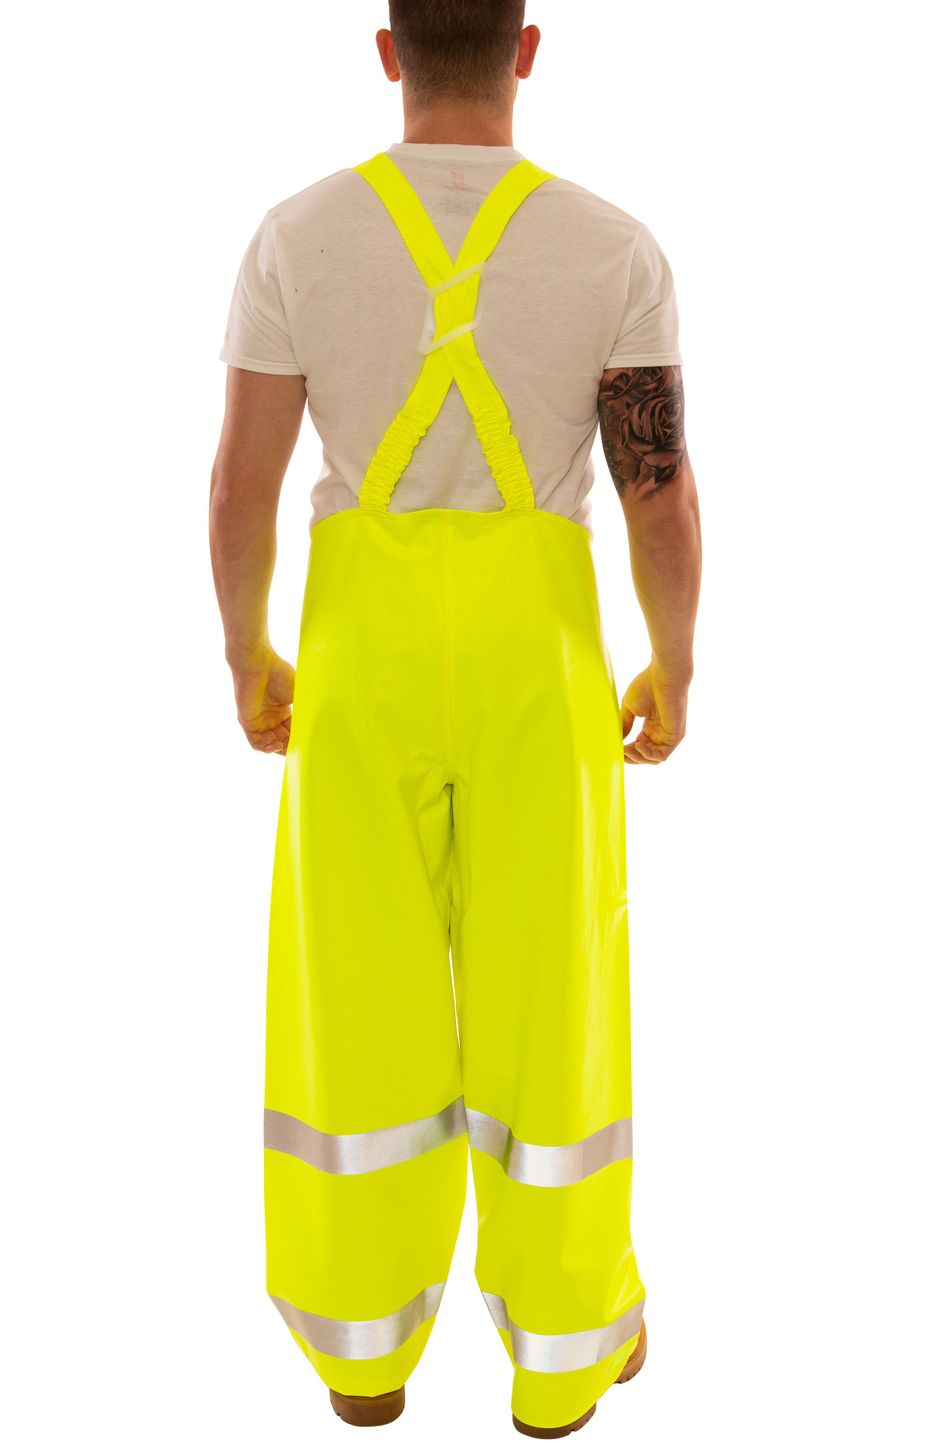 tingley-eclipse-arc-flash-and-fire-resistant-overalls-pvc-on-nomex-chemical-resistant-class-3-hi-vis-fluorescent-yellow-green-back.jpg